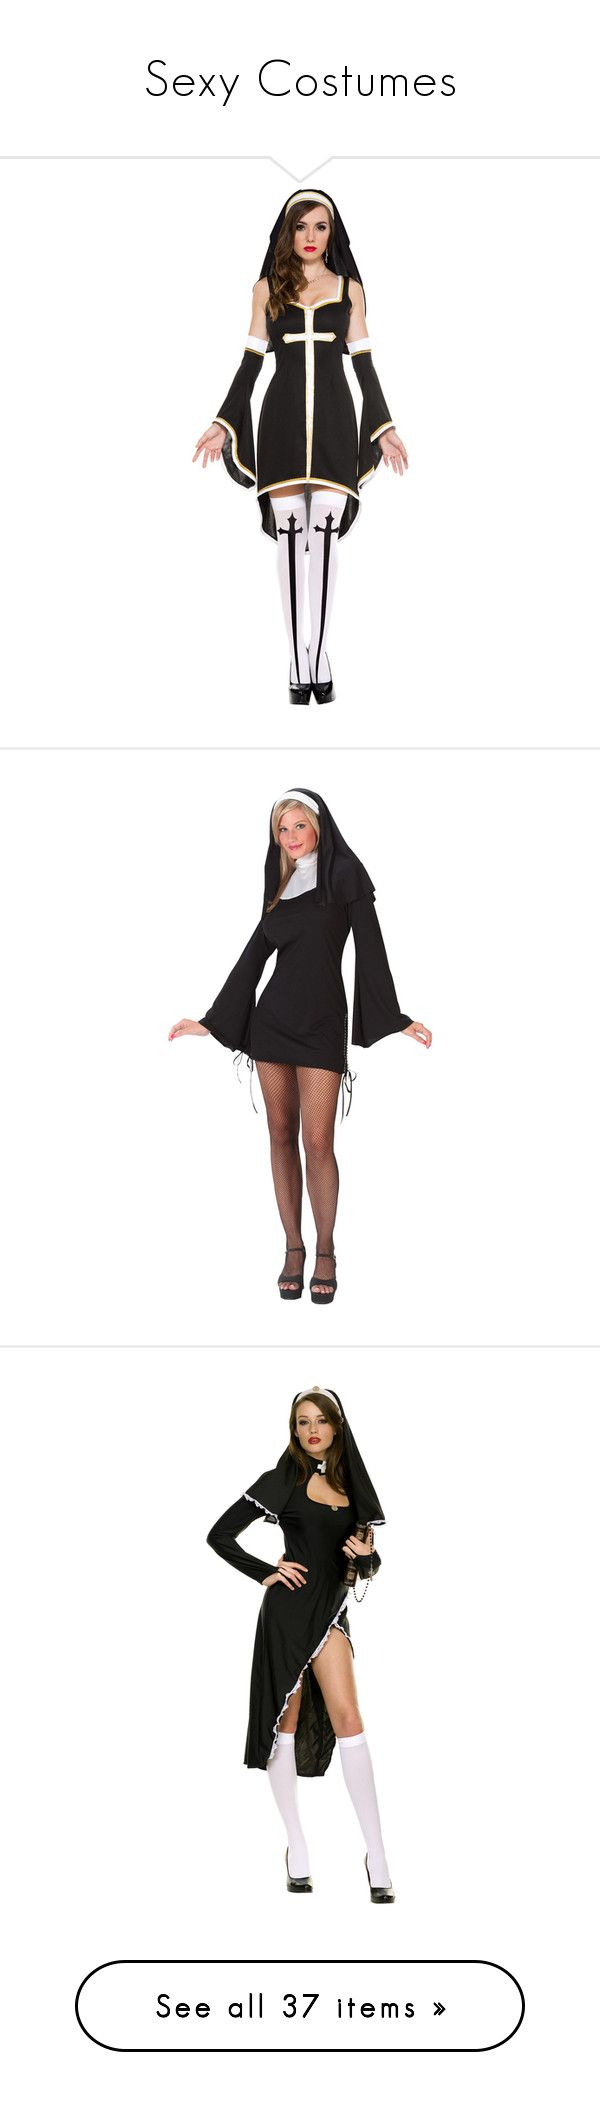 """""""Sexy Costumes"""" by victoria-motionless-cerulli ❤ liked on Polyvore featuring costumes, adult women halloween costumes, adult costume, white nun costume, ladies costumes, womens snow white halloween costume, womens snow white costume, sexy womens halloween costumes, sexy women costumes and sexy costumes"""